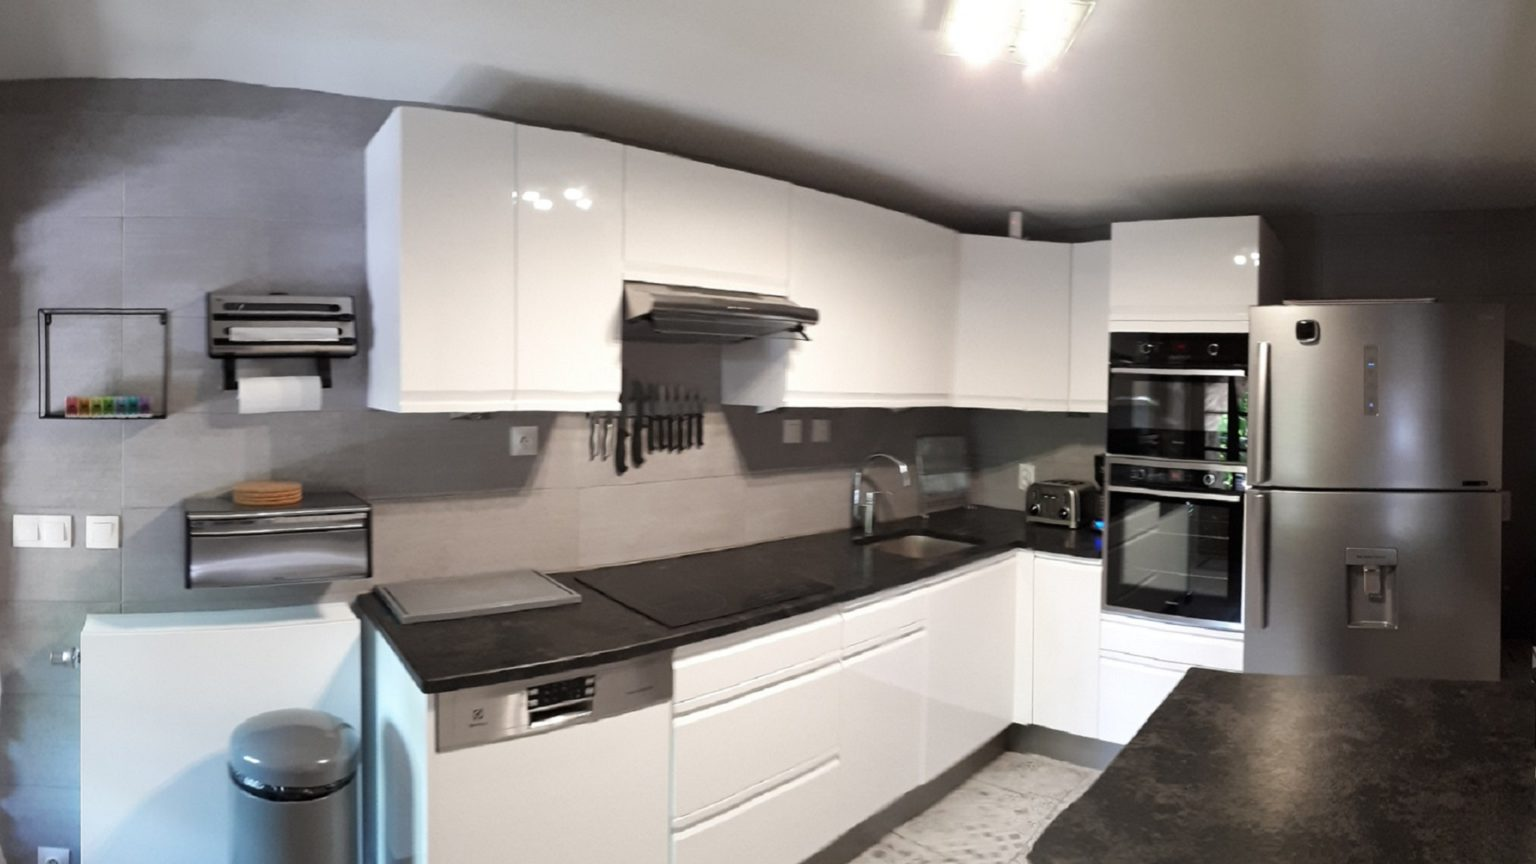 Granite worktop - All equipment for 12 people... and more